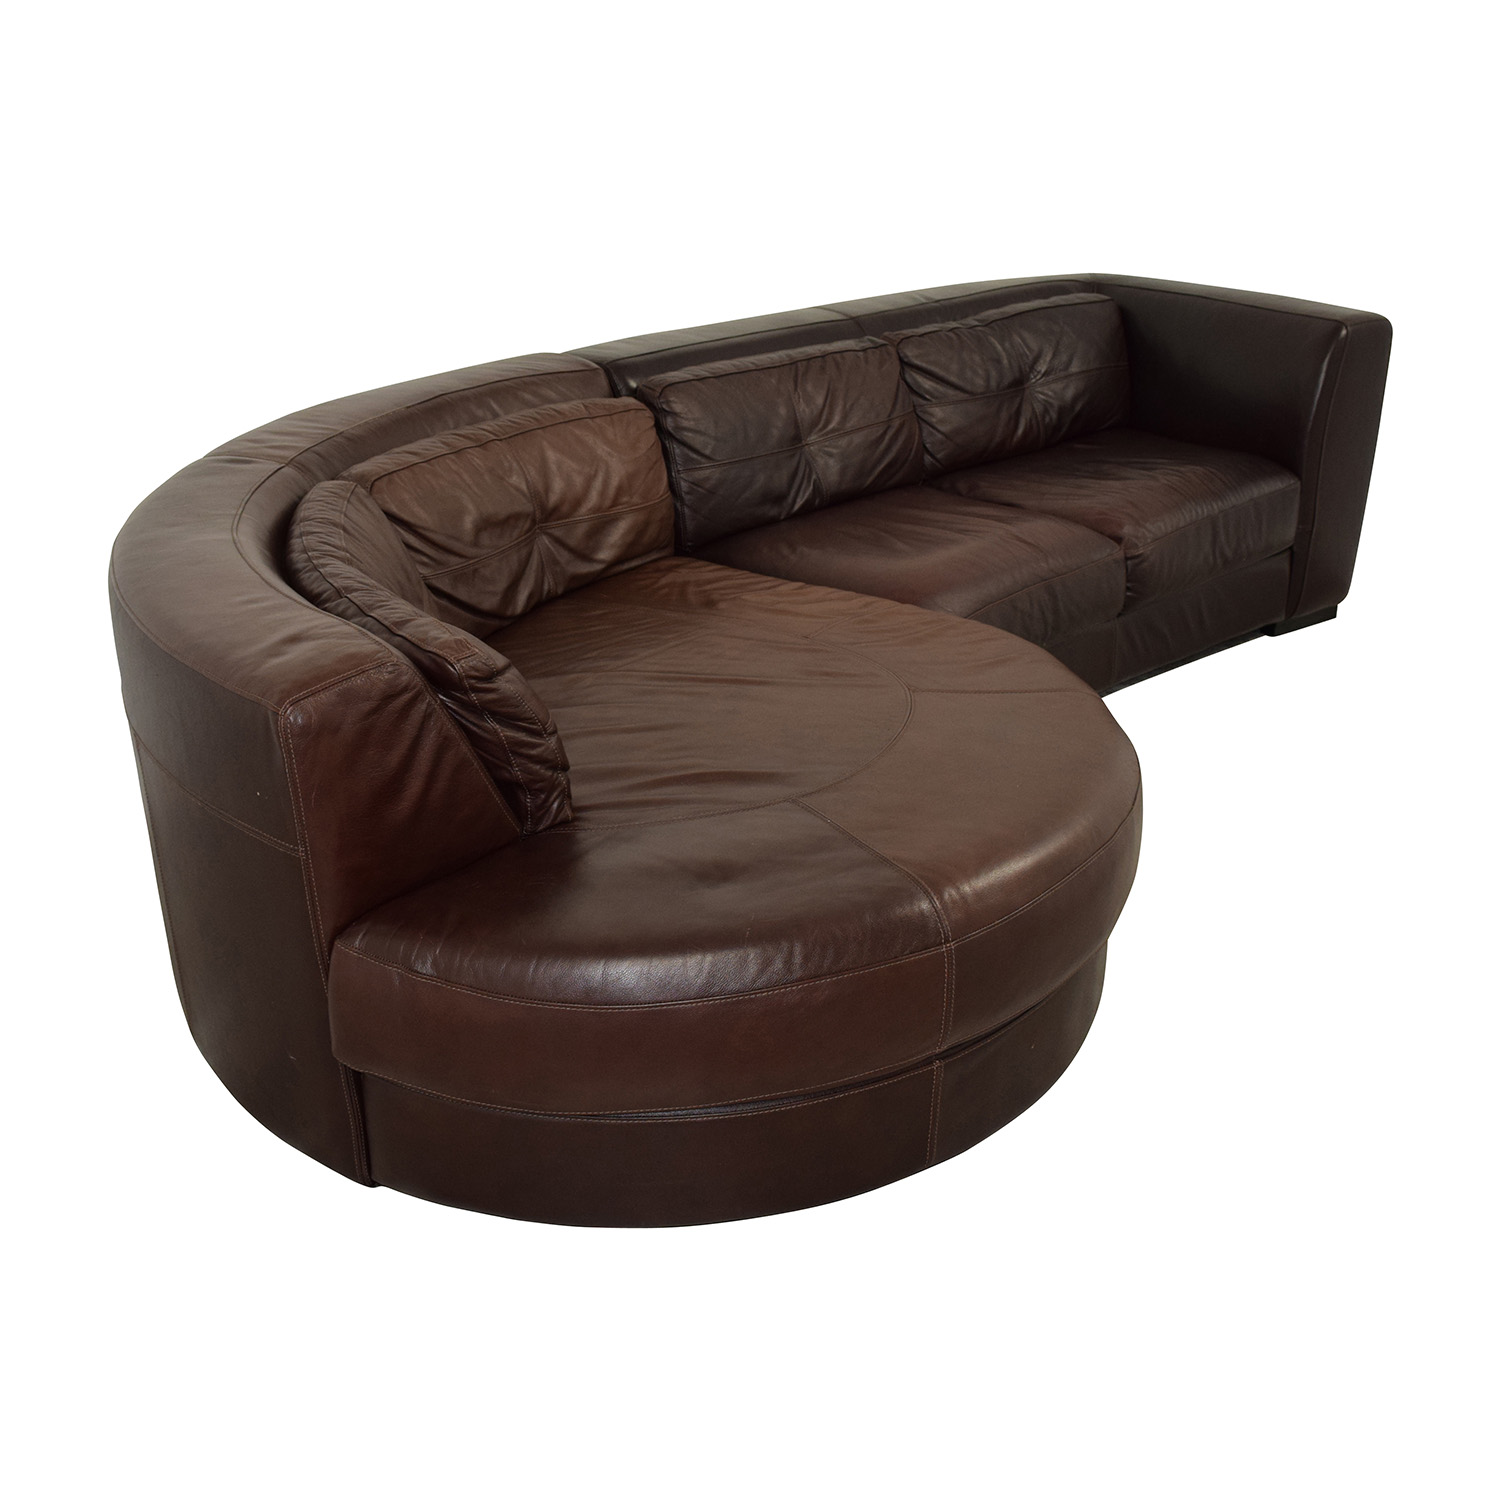 Curved Sofa Sectional Leather: Chateau D'Ax Chateau D'Ax Leather Sectional With